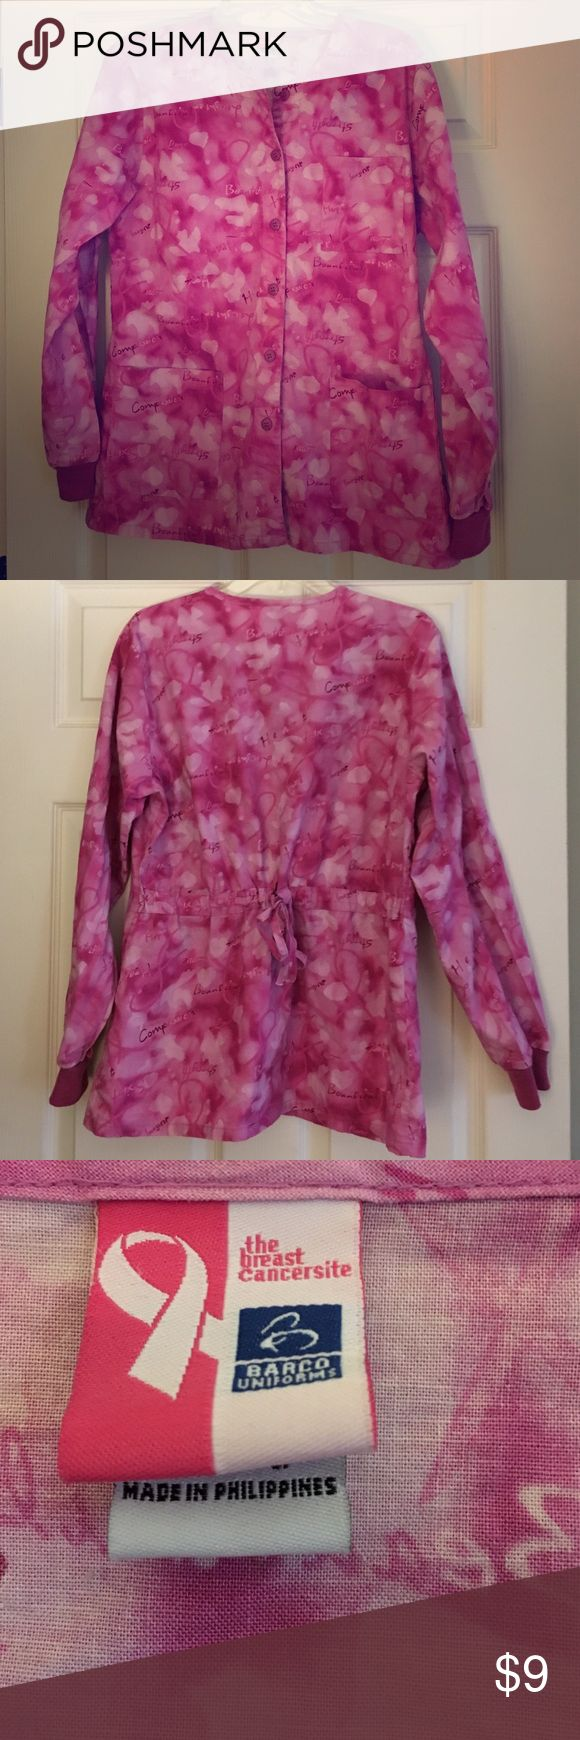 Breast cancer awareness scrub jacket💕 Gently used breast cancer awareness scrub jacket. Too small for me. Non smoking home. Barco Jackets & Coats